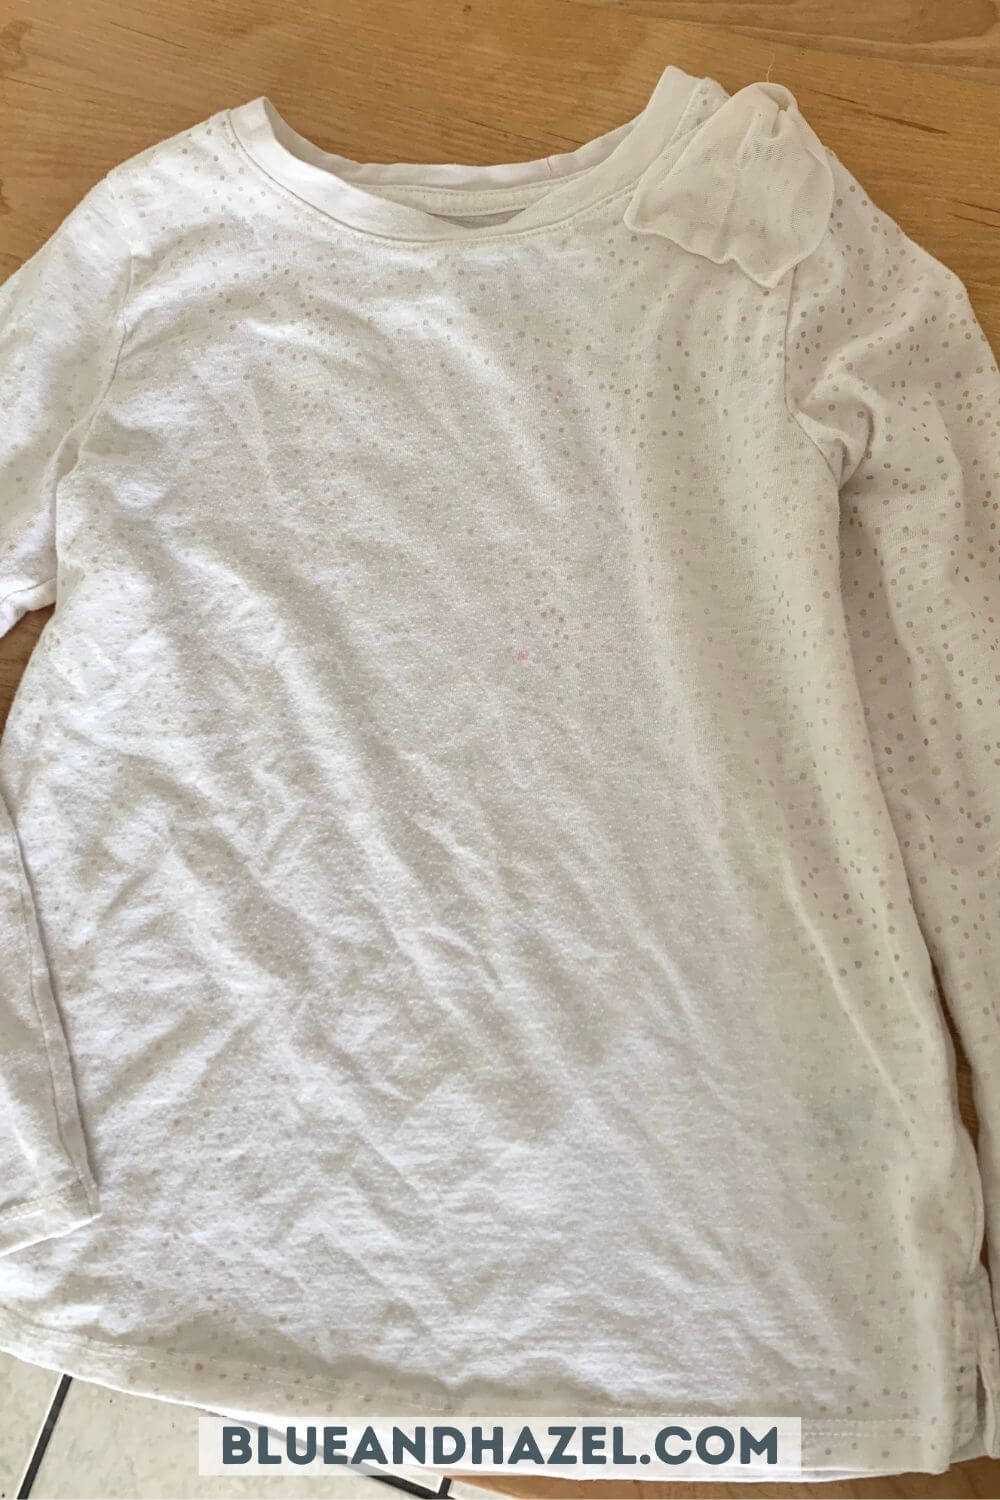 A white shirt after removing a chocolate smoothie stain with branch basics.